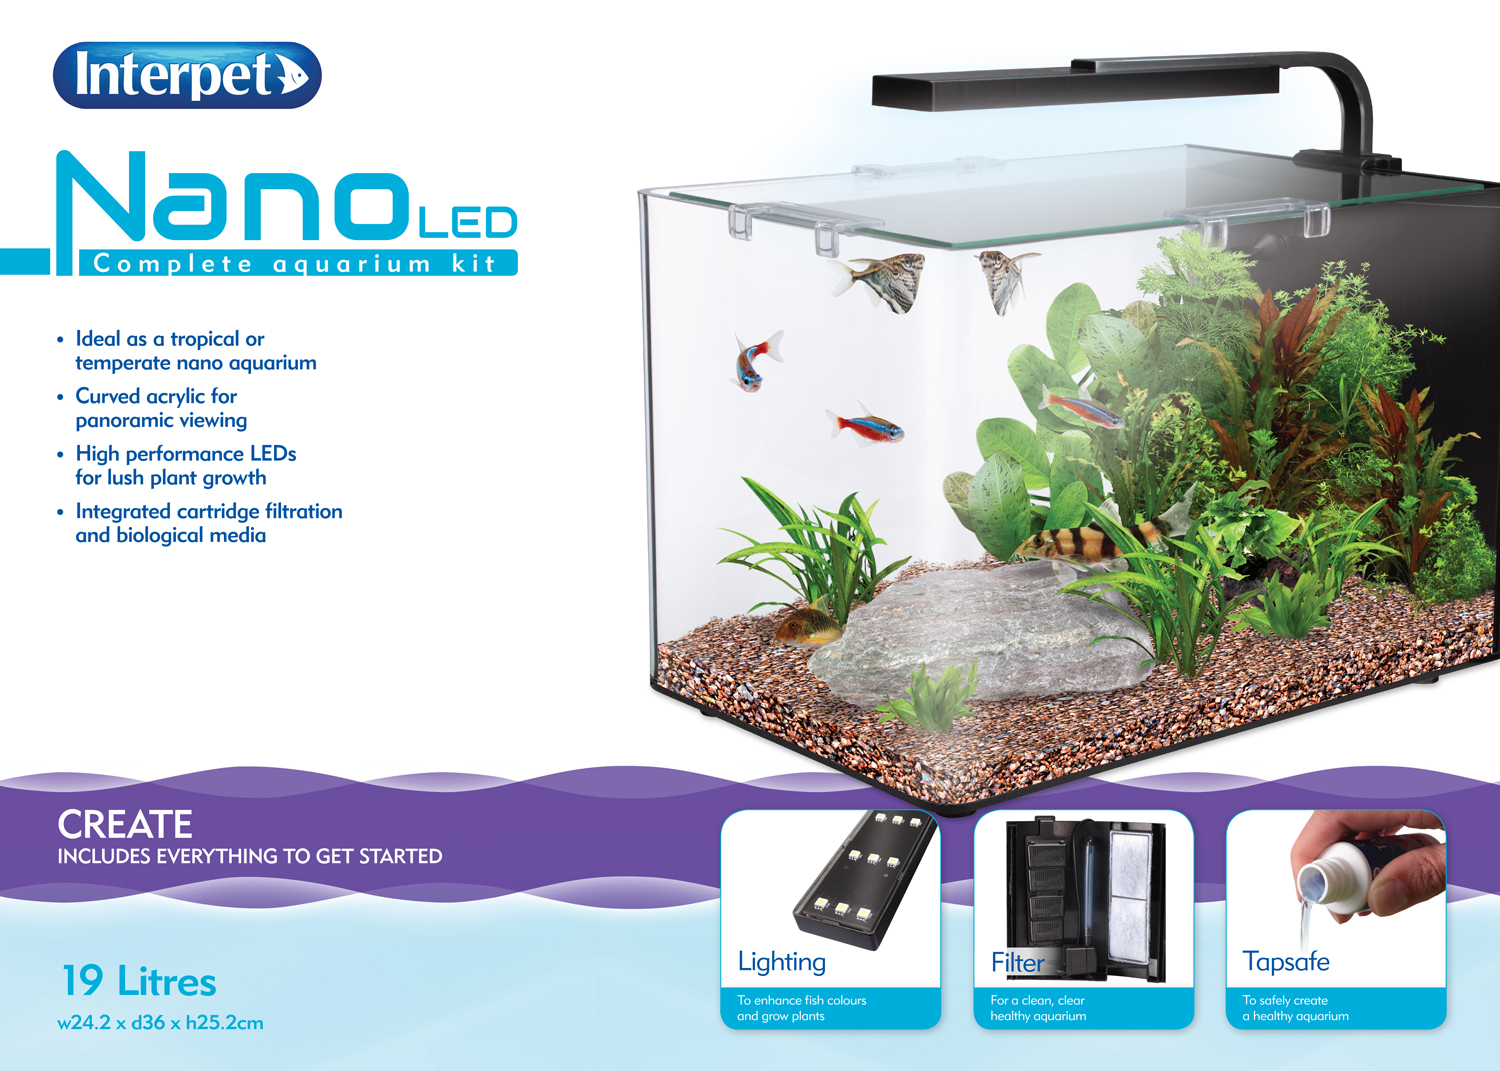 Small nano aquarium fish tank tropical -  Details About Interpet Nano Led Fish Tank Aquarium Kit Various Sizes